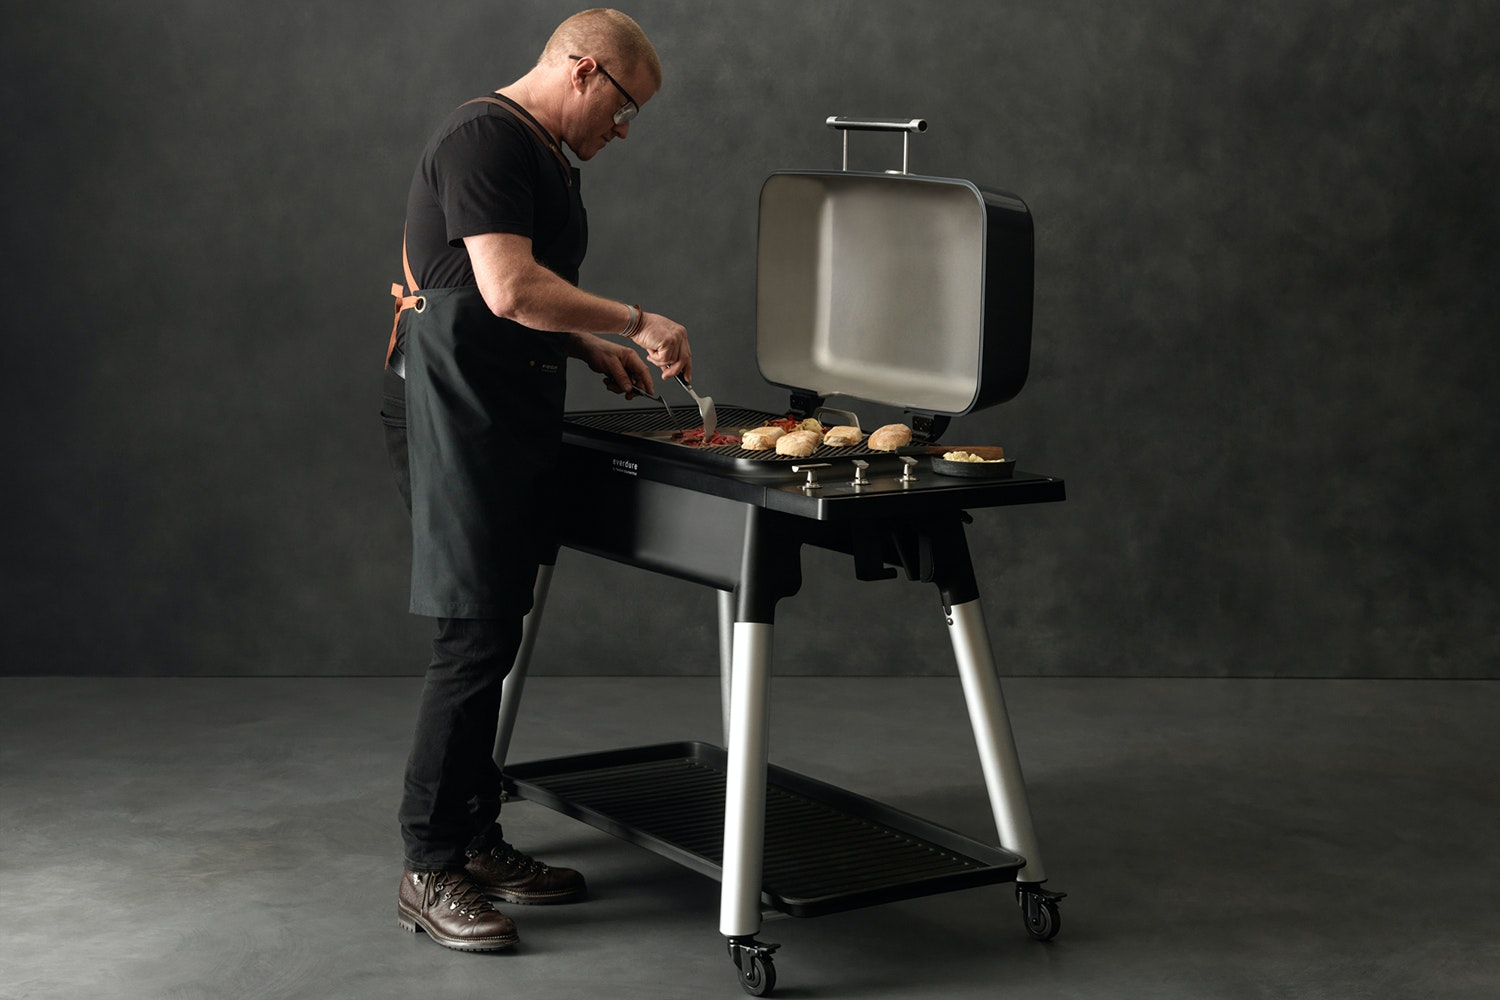 Everdure Furnace 3 Burner Gas Barbeque by Heston Blumenthal